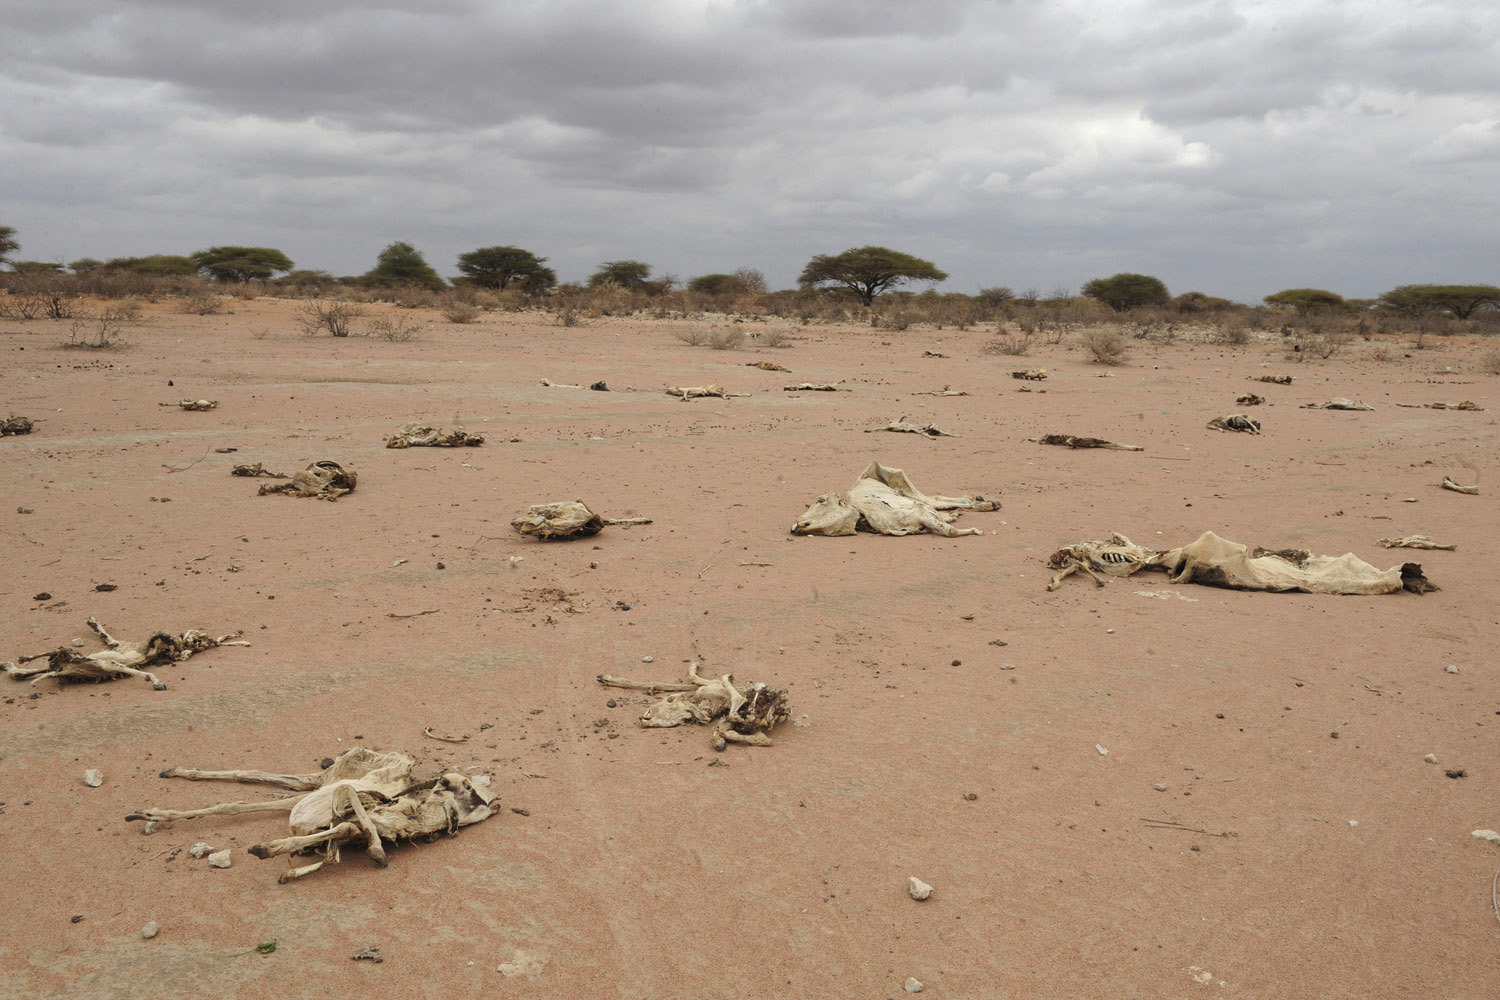 July 20, 2011. Carcasses of livestock pictured in Athibohol, northeast of Nairobi. Close to 1.4 million people in the region are in dire need of relief food, as a result of the prolonged drought.